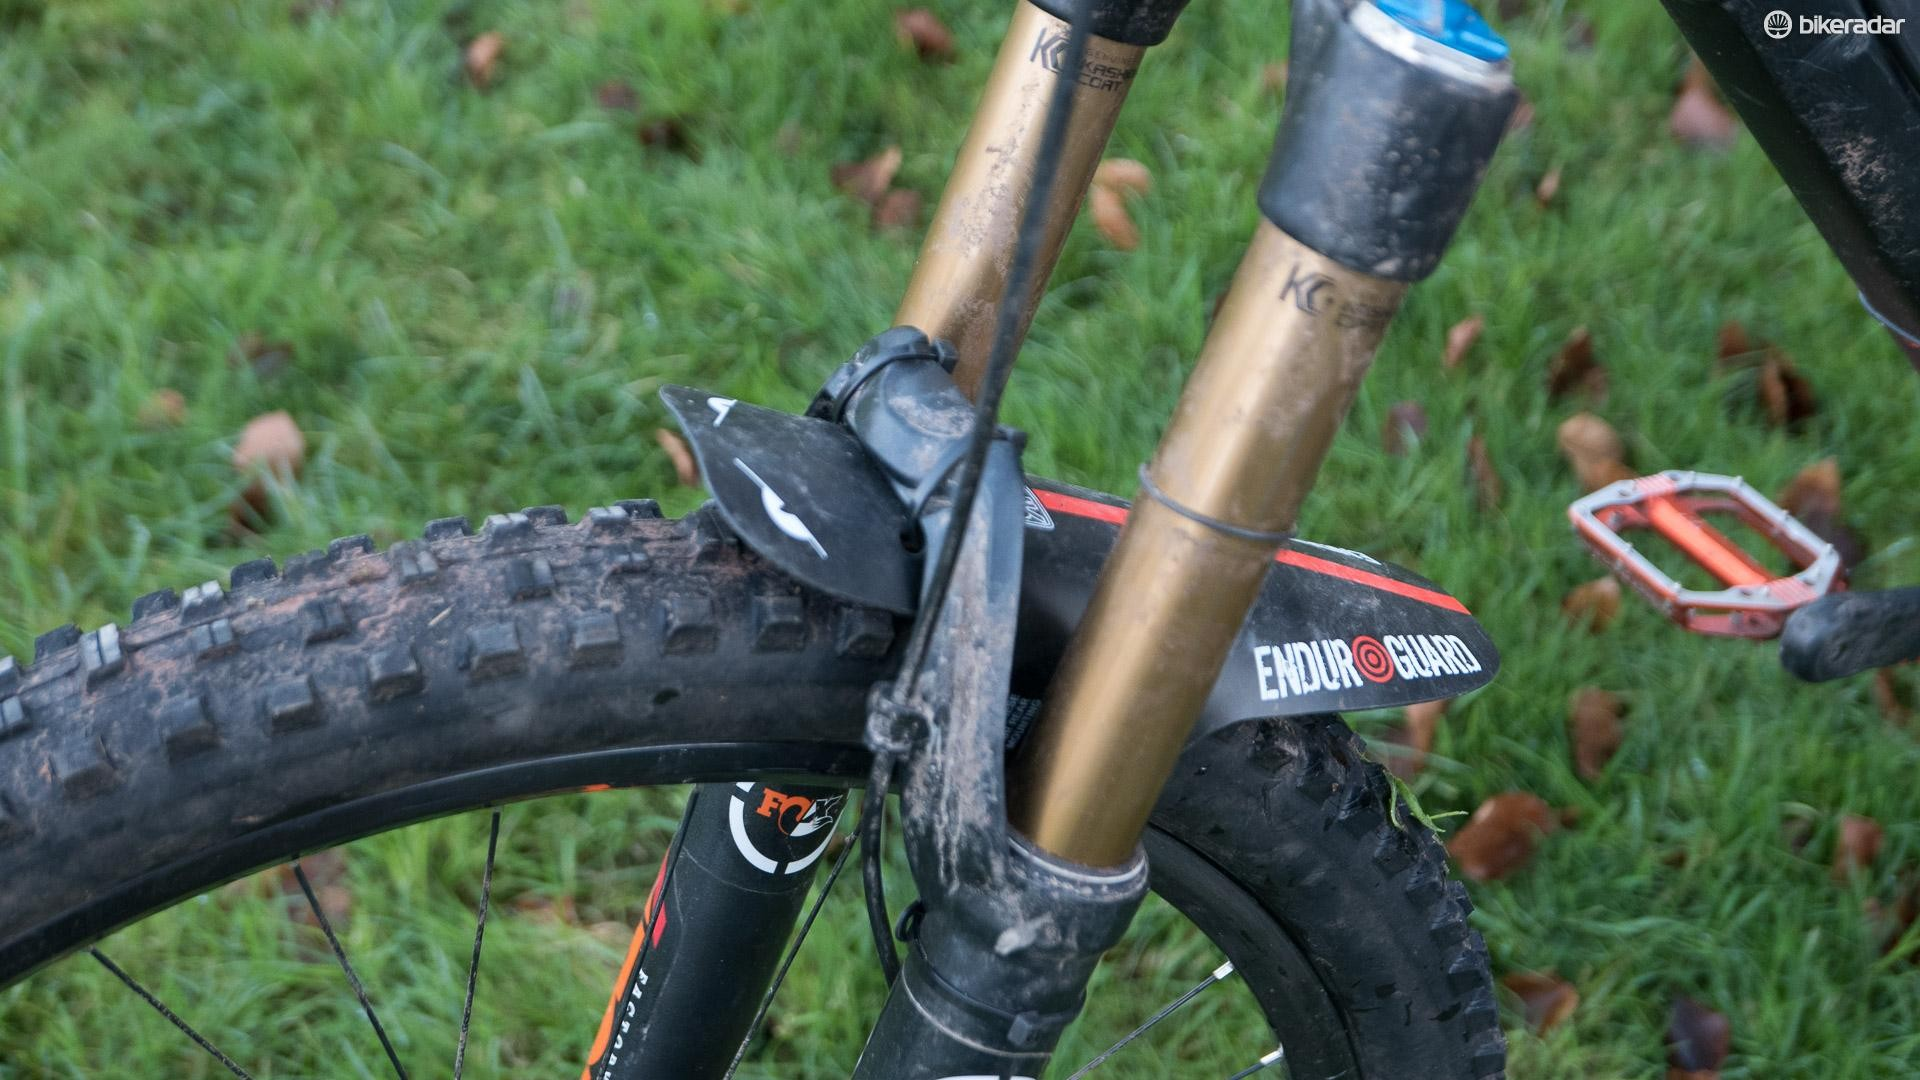 RRP's Enduroguard is cheap and reasonably effective too